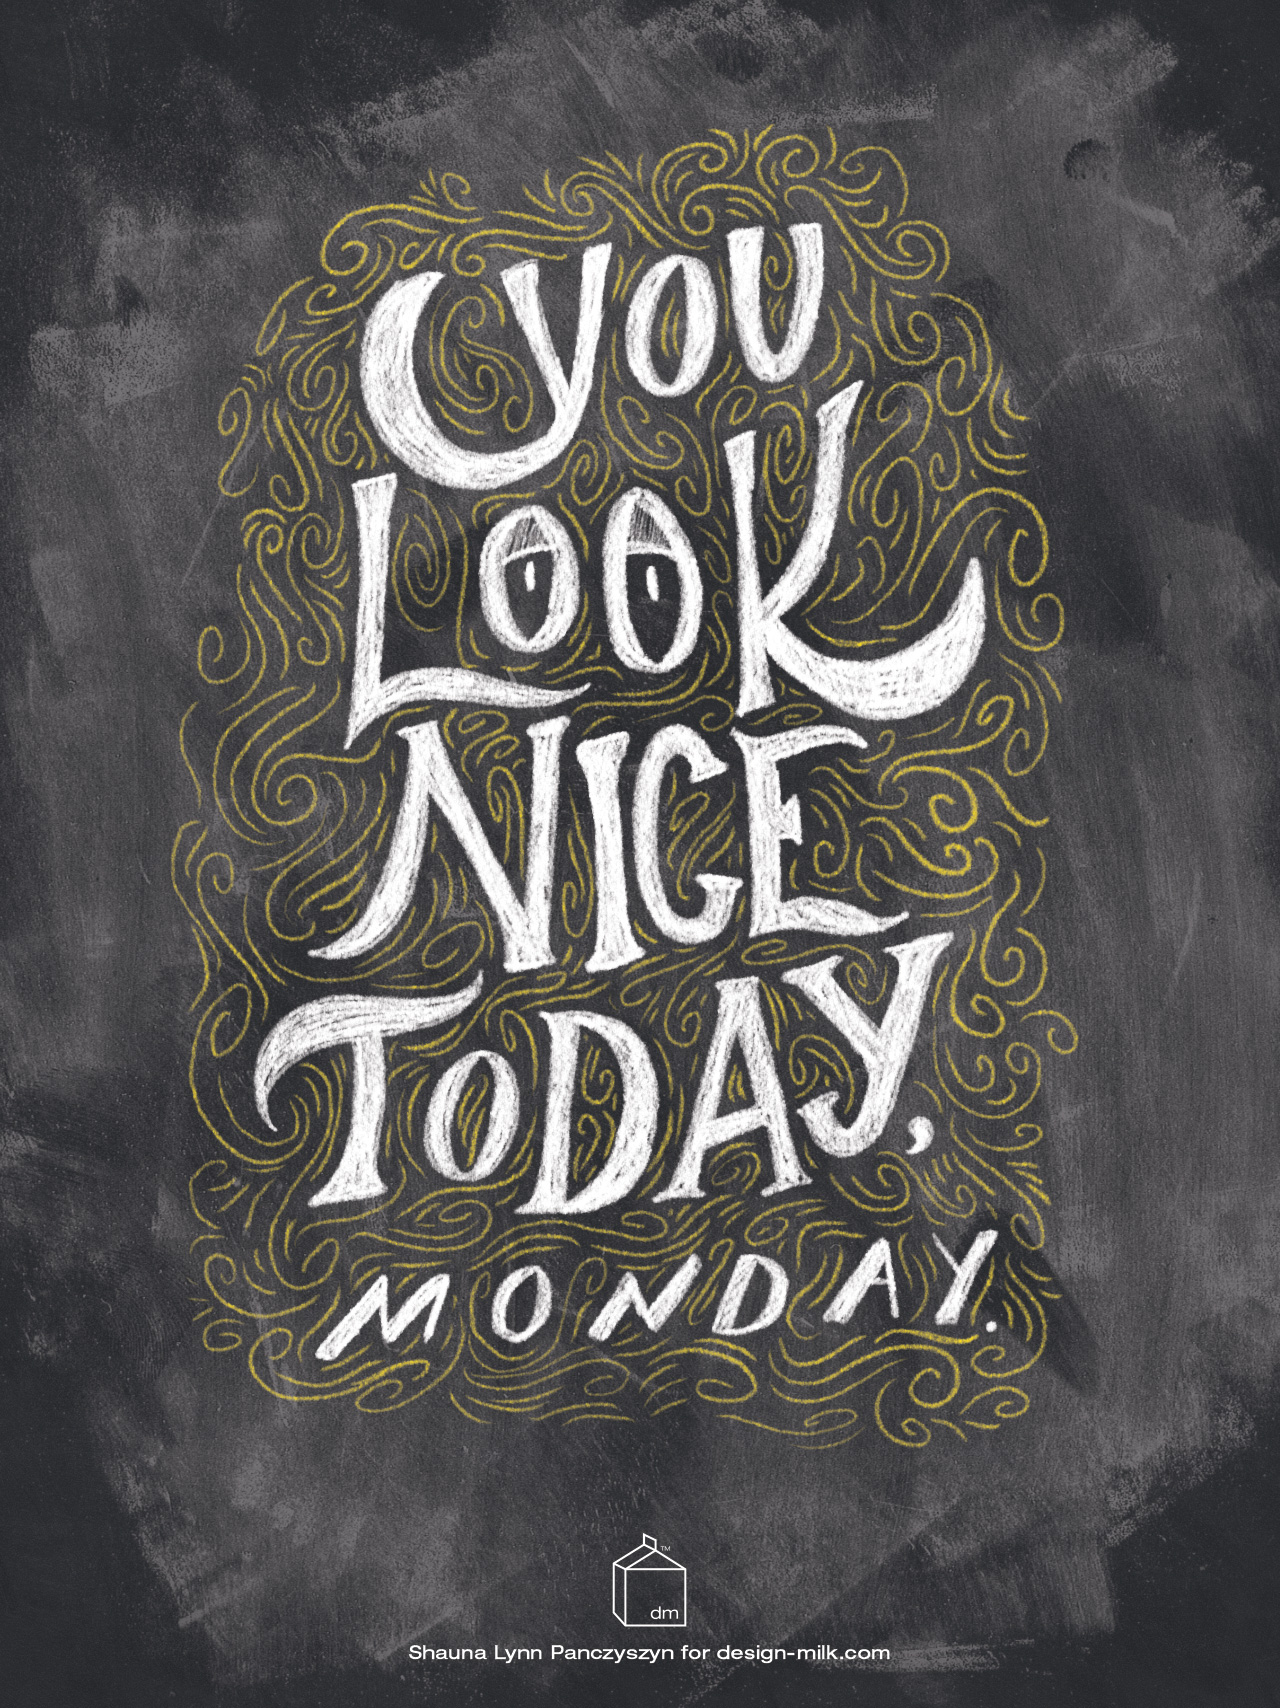 you-look-nice-today-monday-chalk-lettering-quote-panczyszyn